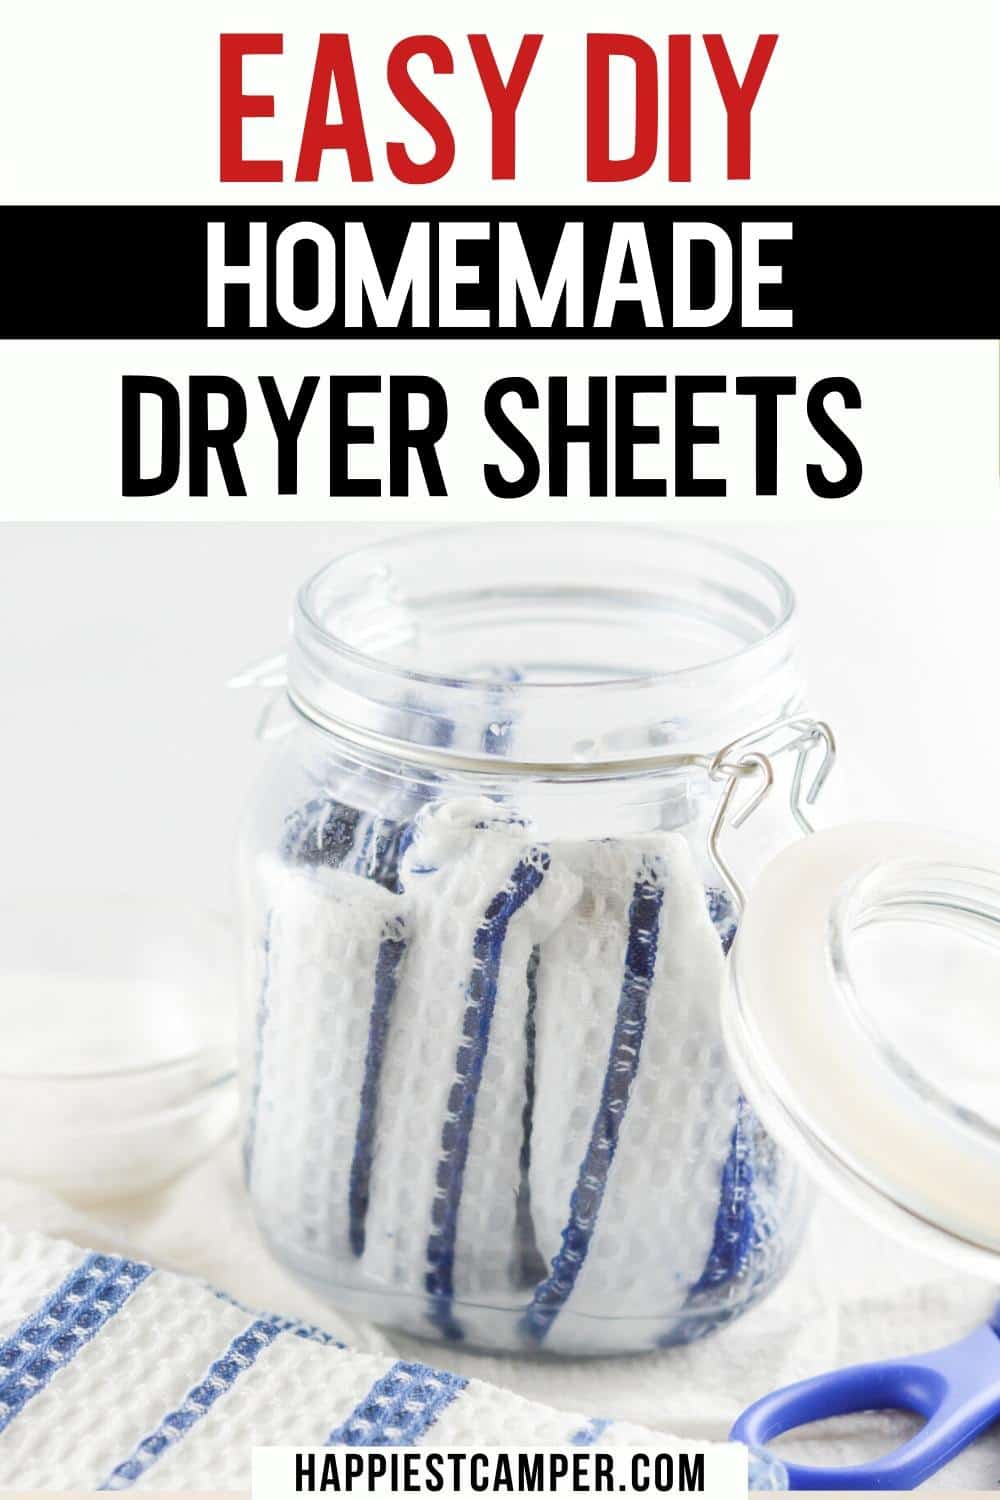 Easy DIY Homemade Dryer Sheets